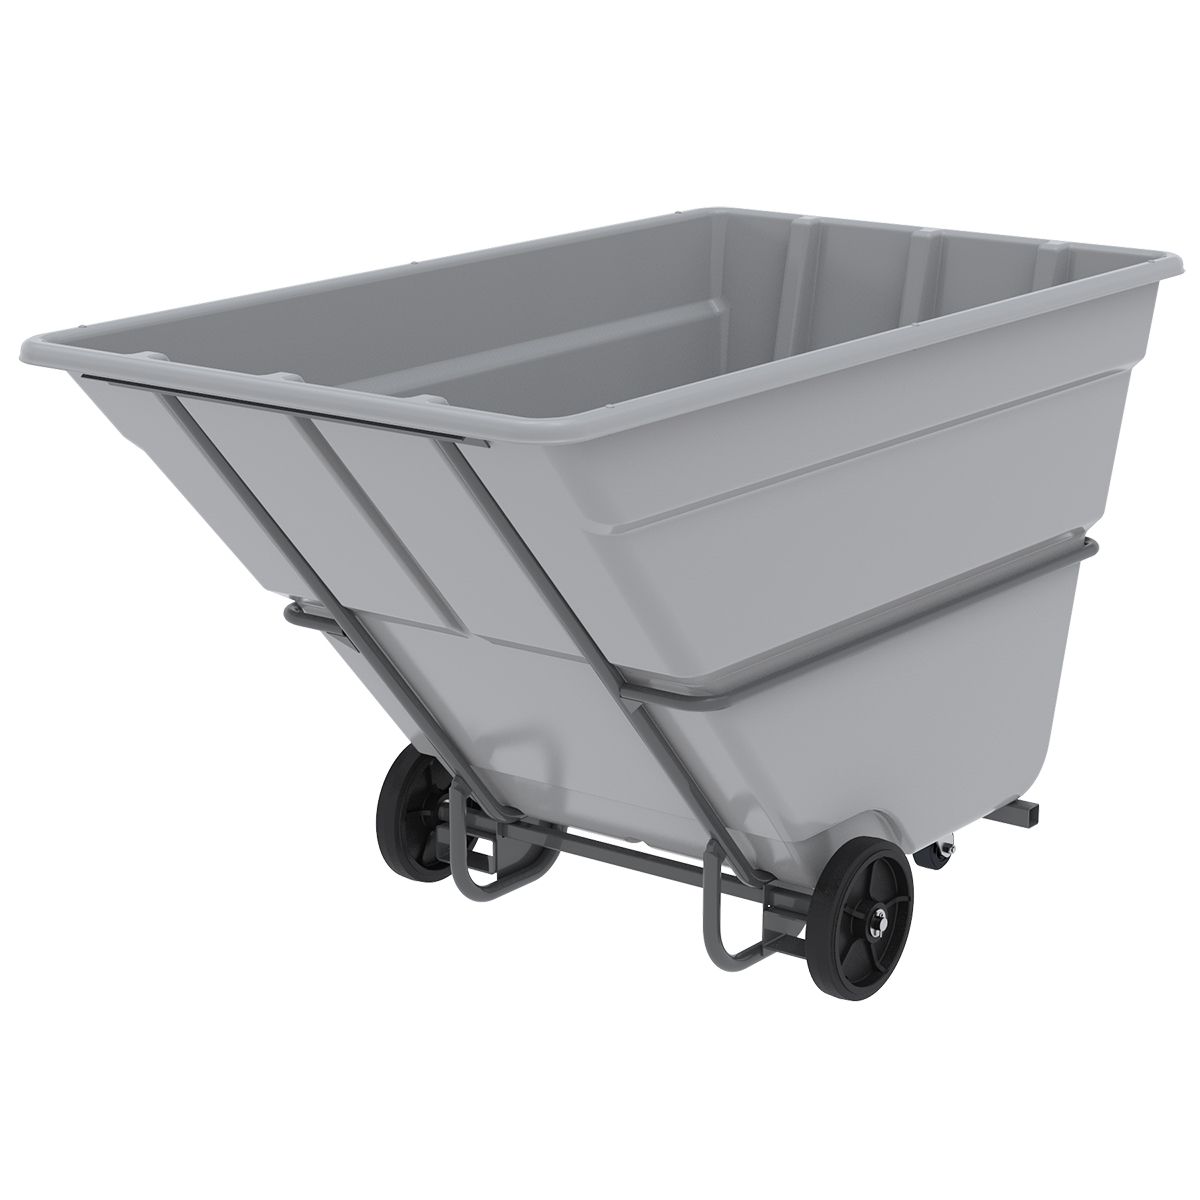 Akro-Tilt Truck w/ Fork Channels Heavy-Duty 400 Gal, 48 x 85 x 51, Gray (77810FGREY).  This item sold in carton quantities of 1.